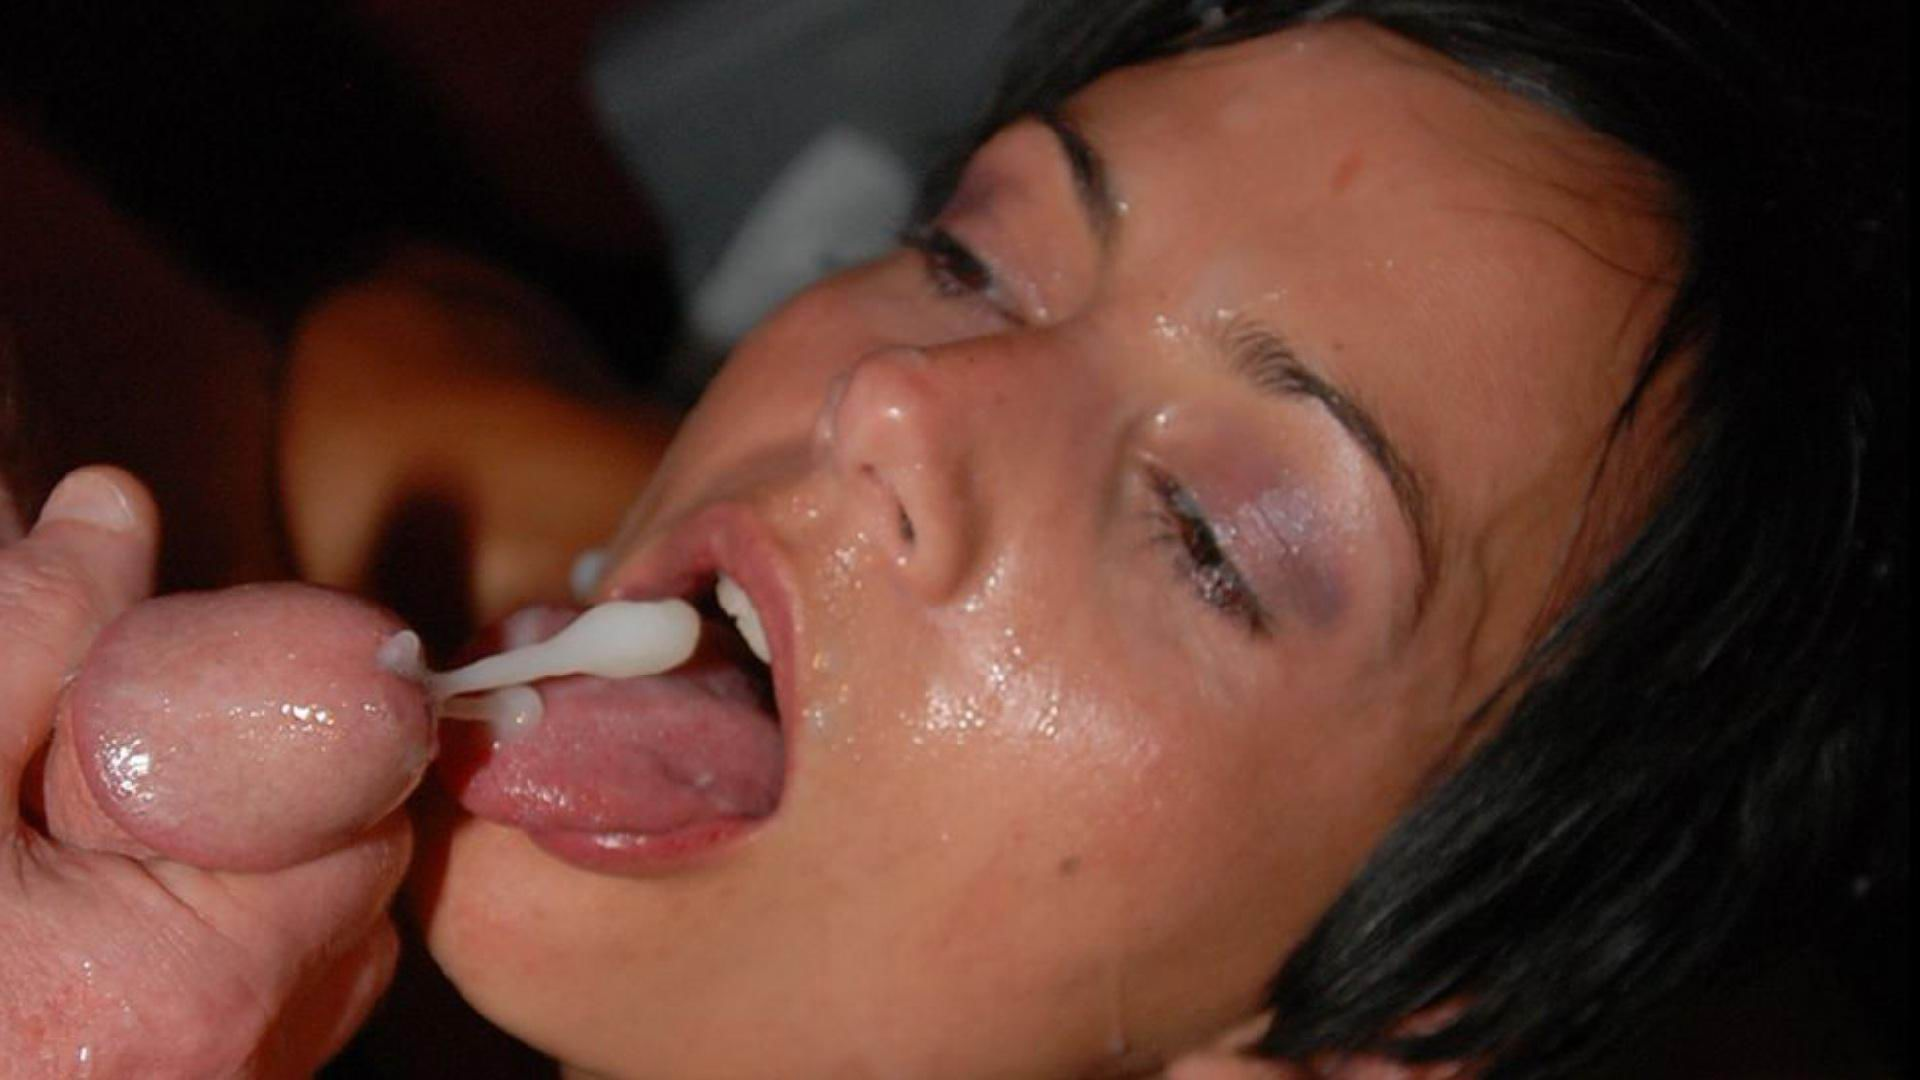 sperm-on-girl-face-porn